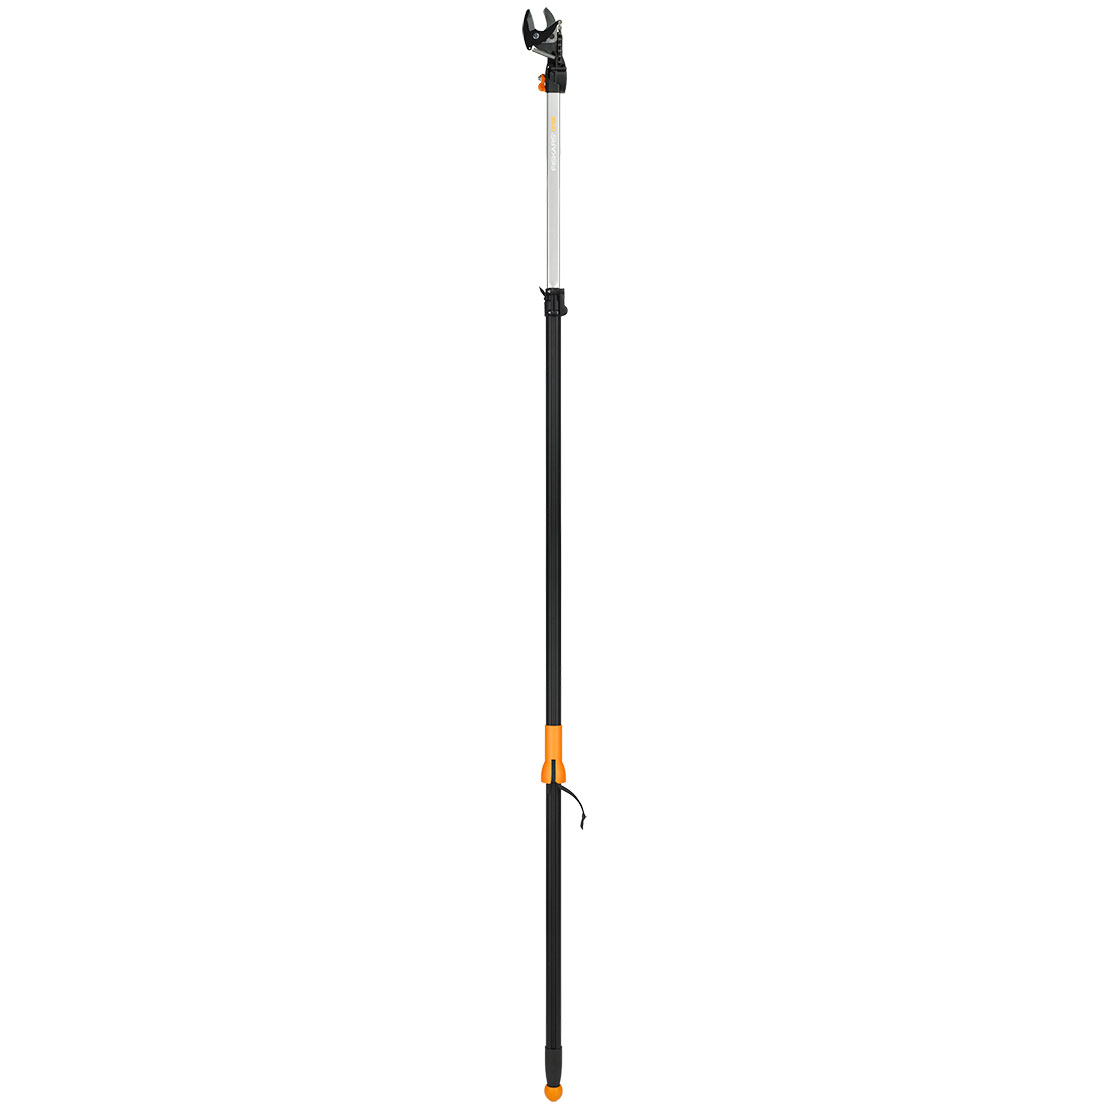 1000598-Tree-Pruner-Bypass-Telescopic-UP86.jpg